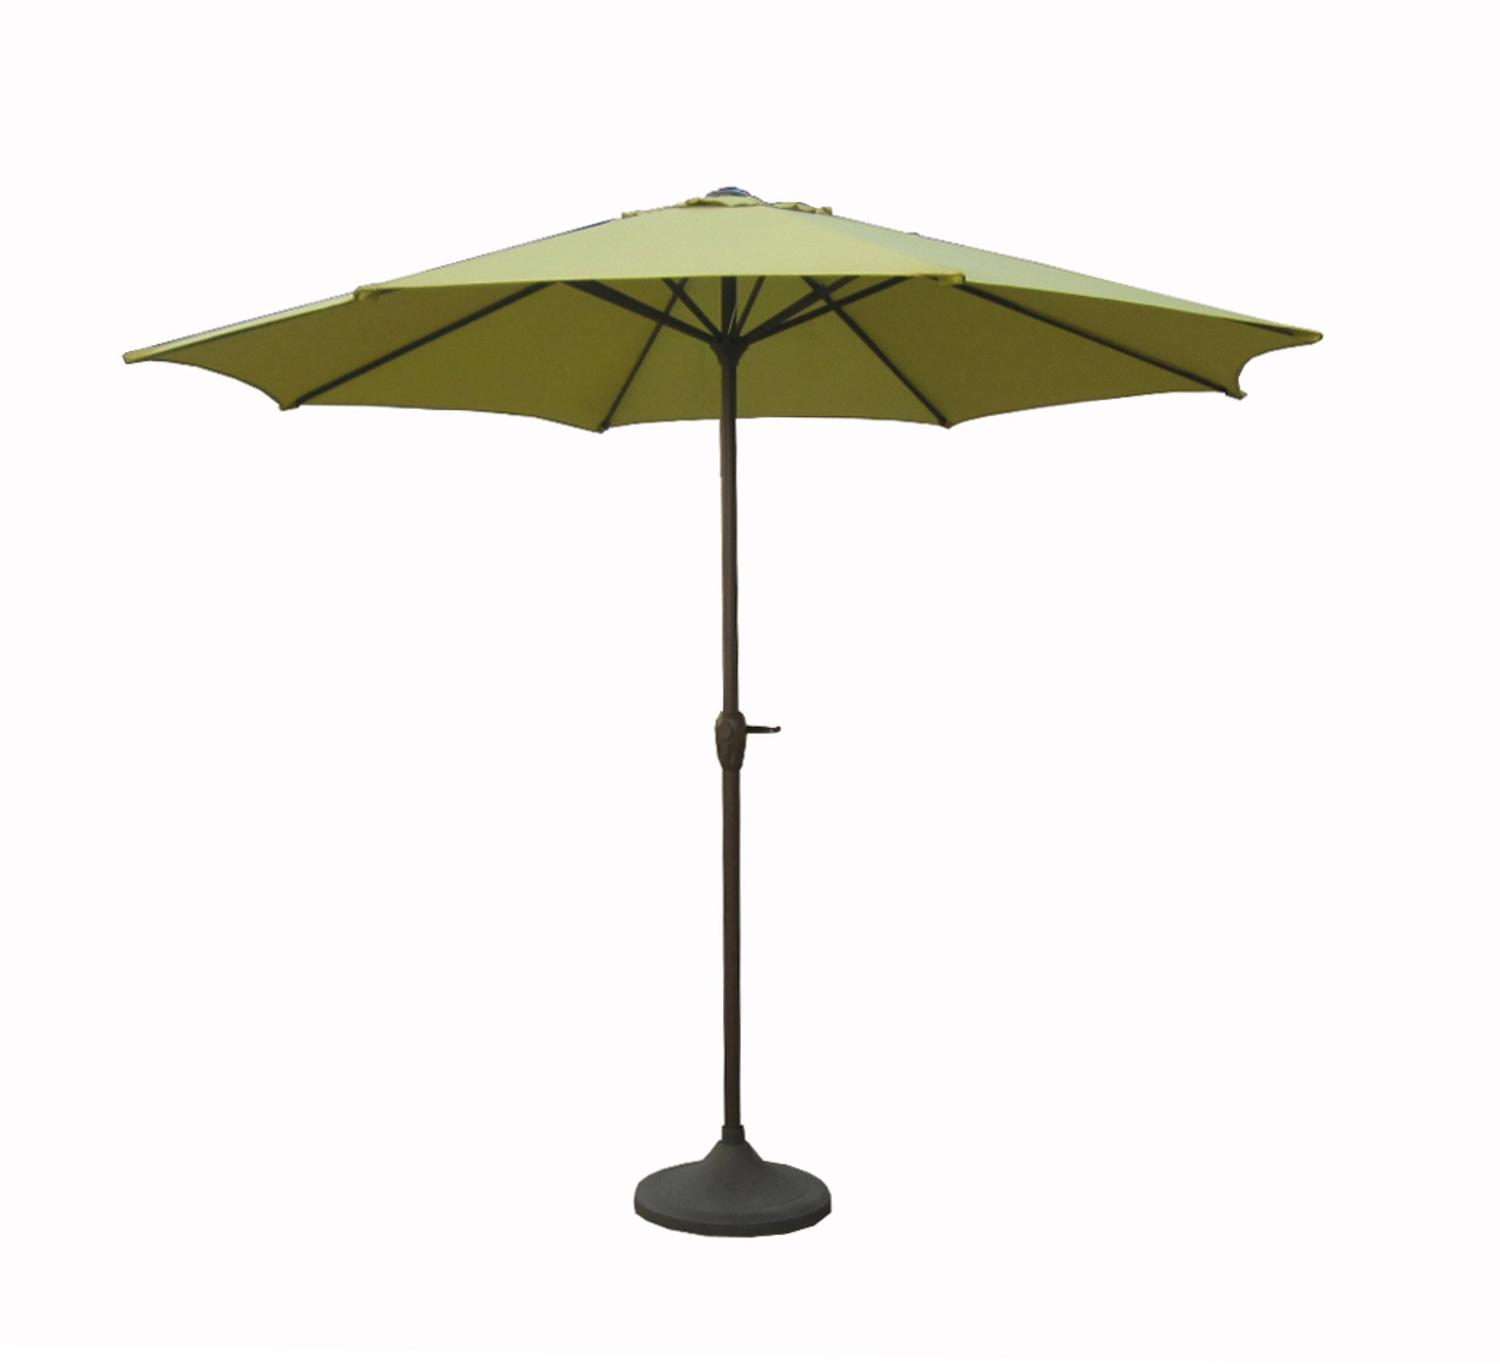 9' Outdoor Patio Market Umbrella with Hand Crank and Tilt Sage Brown and Black by Outdoor Umbrellas